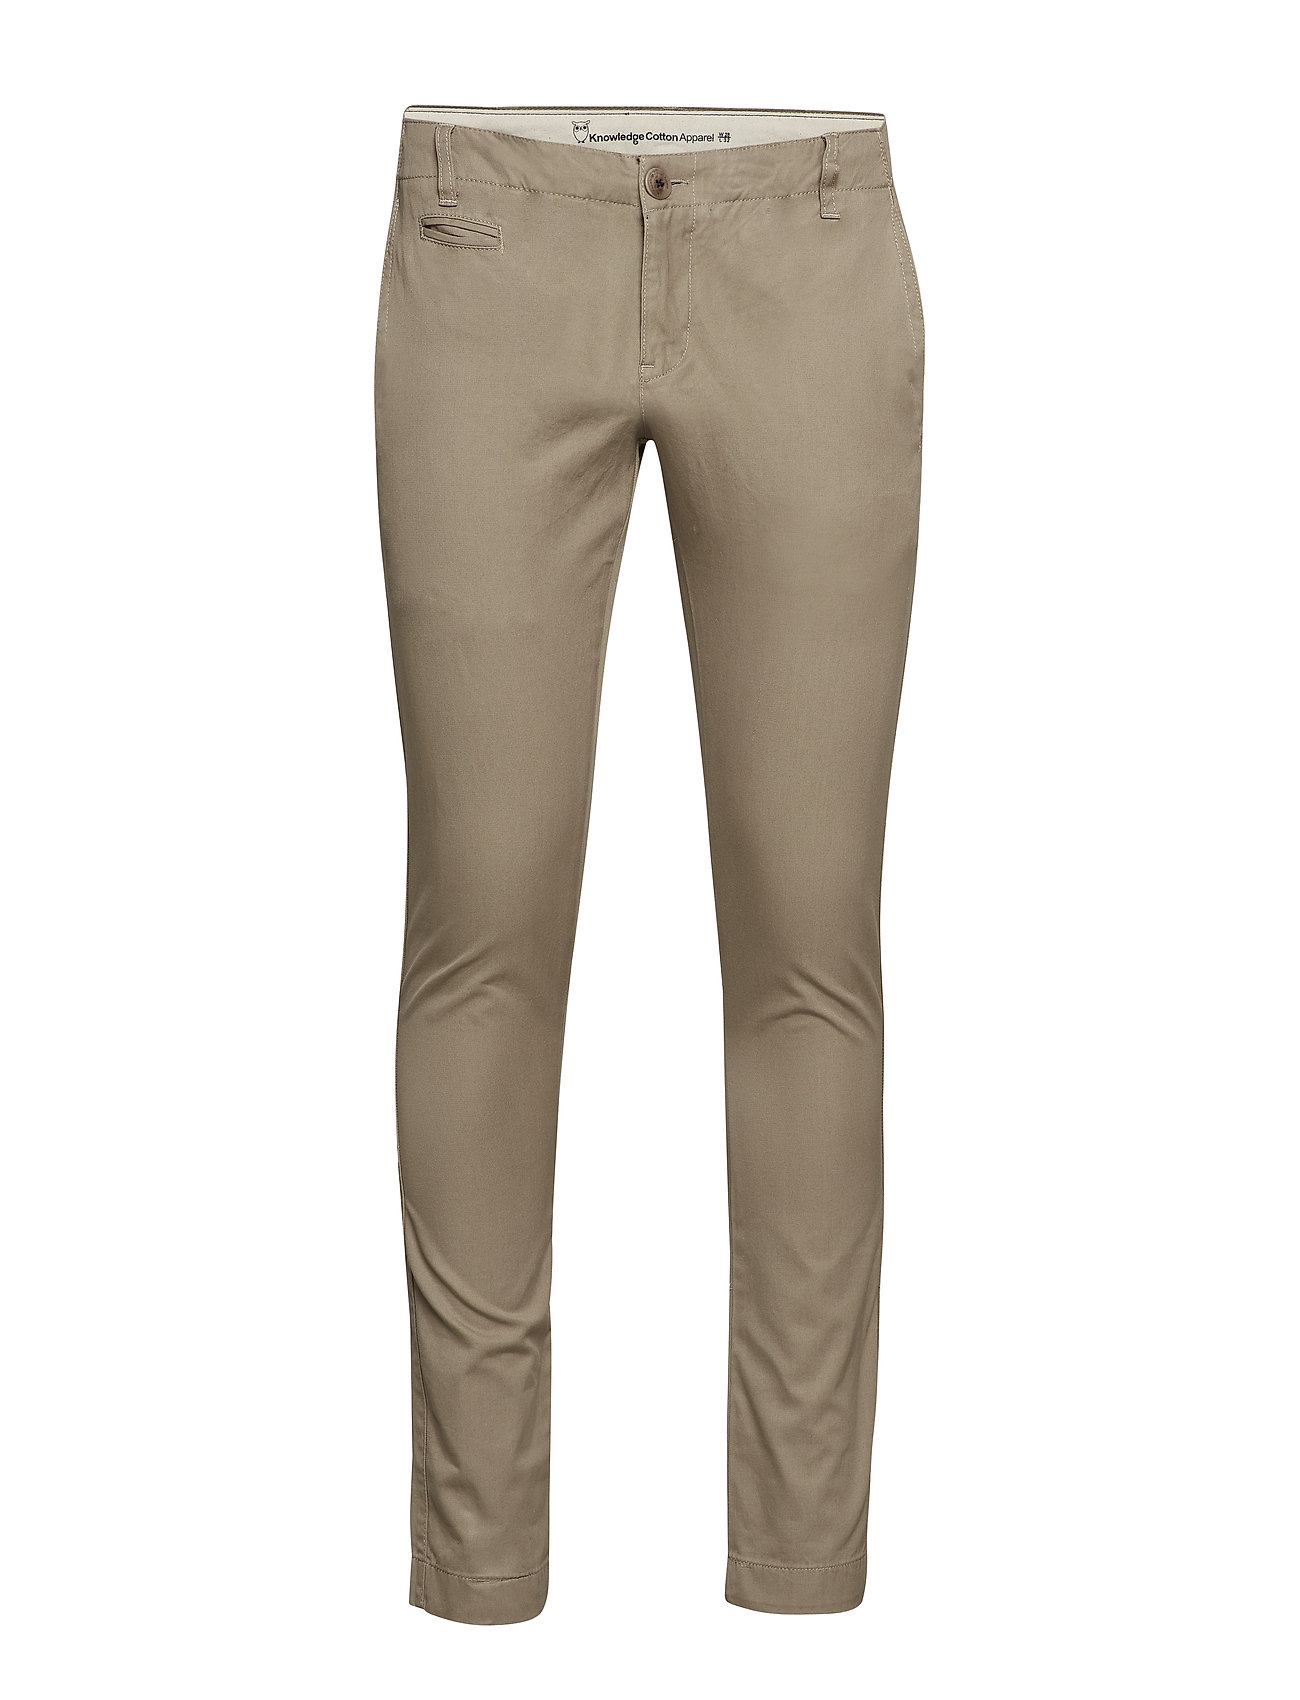 Knowledge Cotton Apparel Twisted Twill Chinos - GREIGE